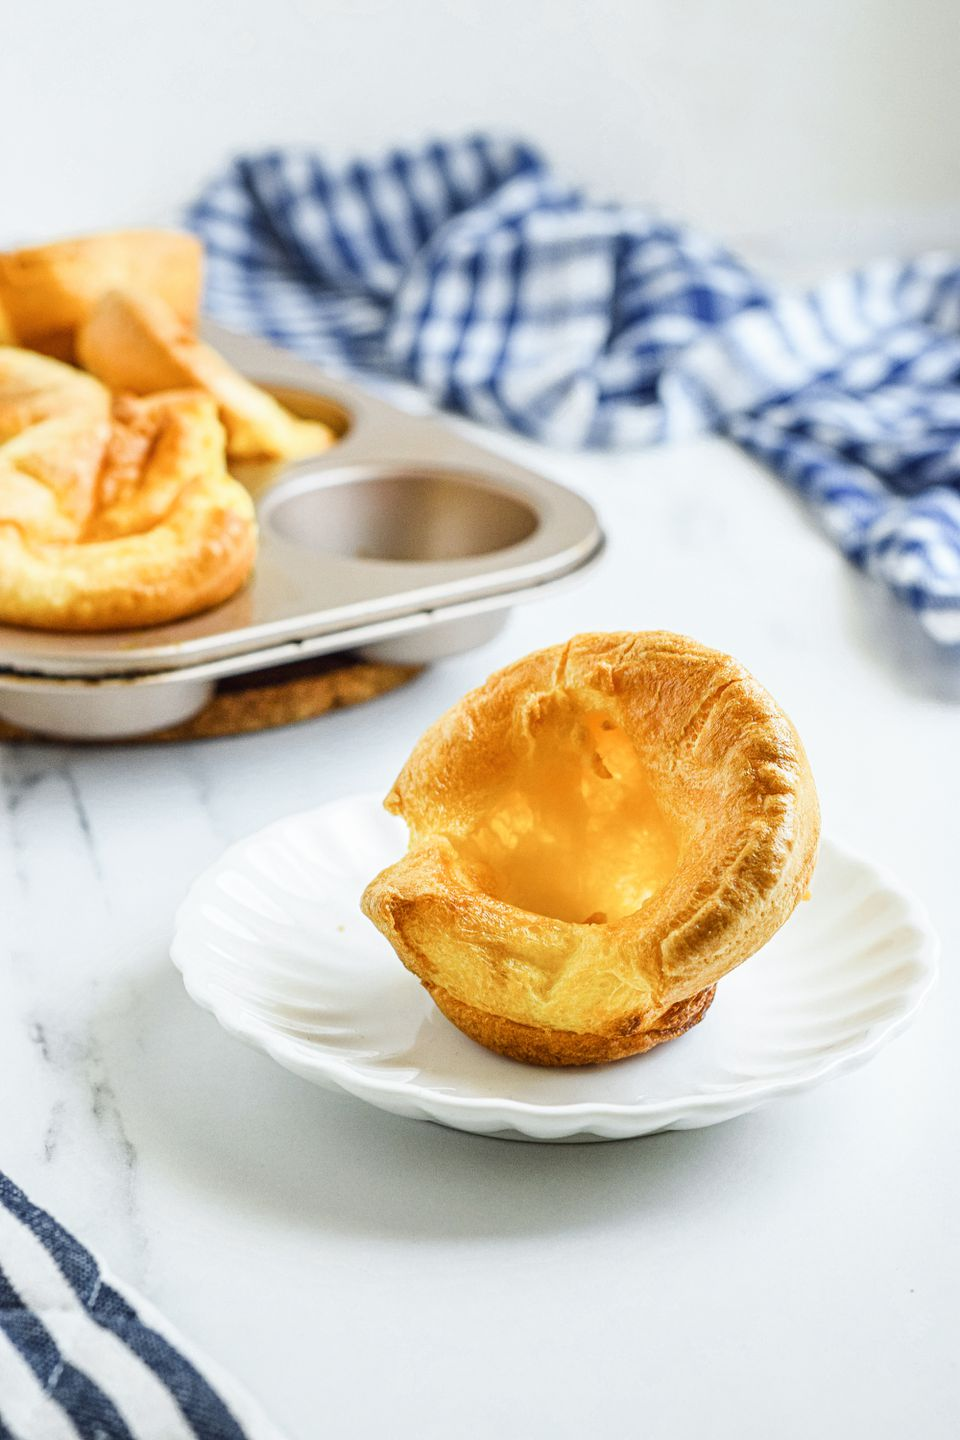 A plate with a yorkshire pudding on it and more in the background along with a striped linen.